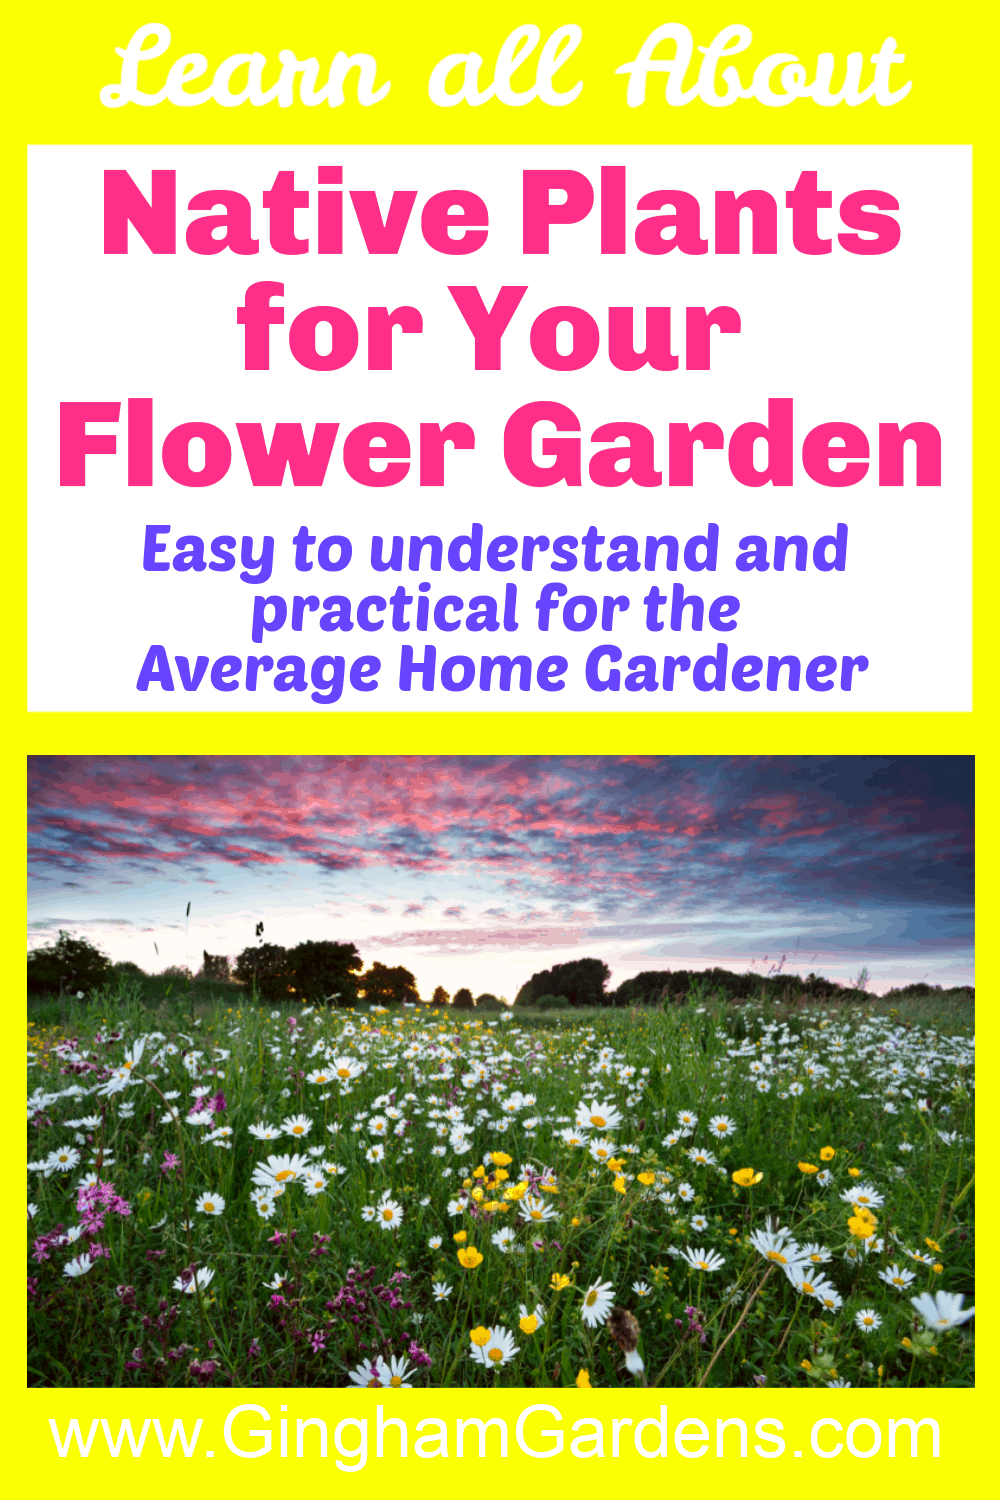 Image of a Wildflower Meadow with text overlay - Native Plants for Your Flower Garden